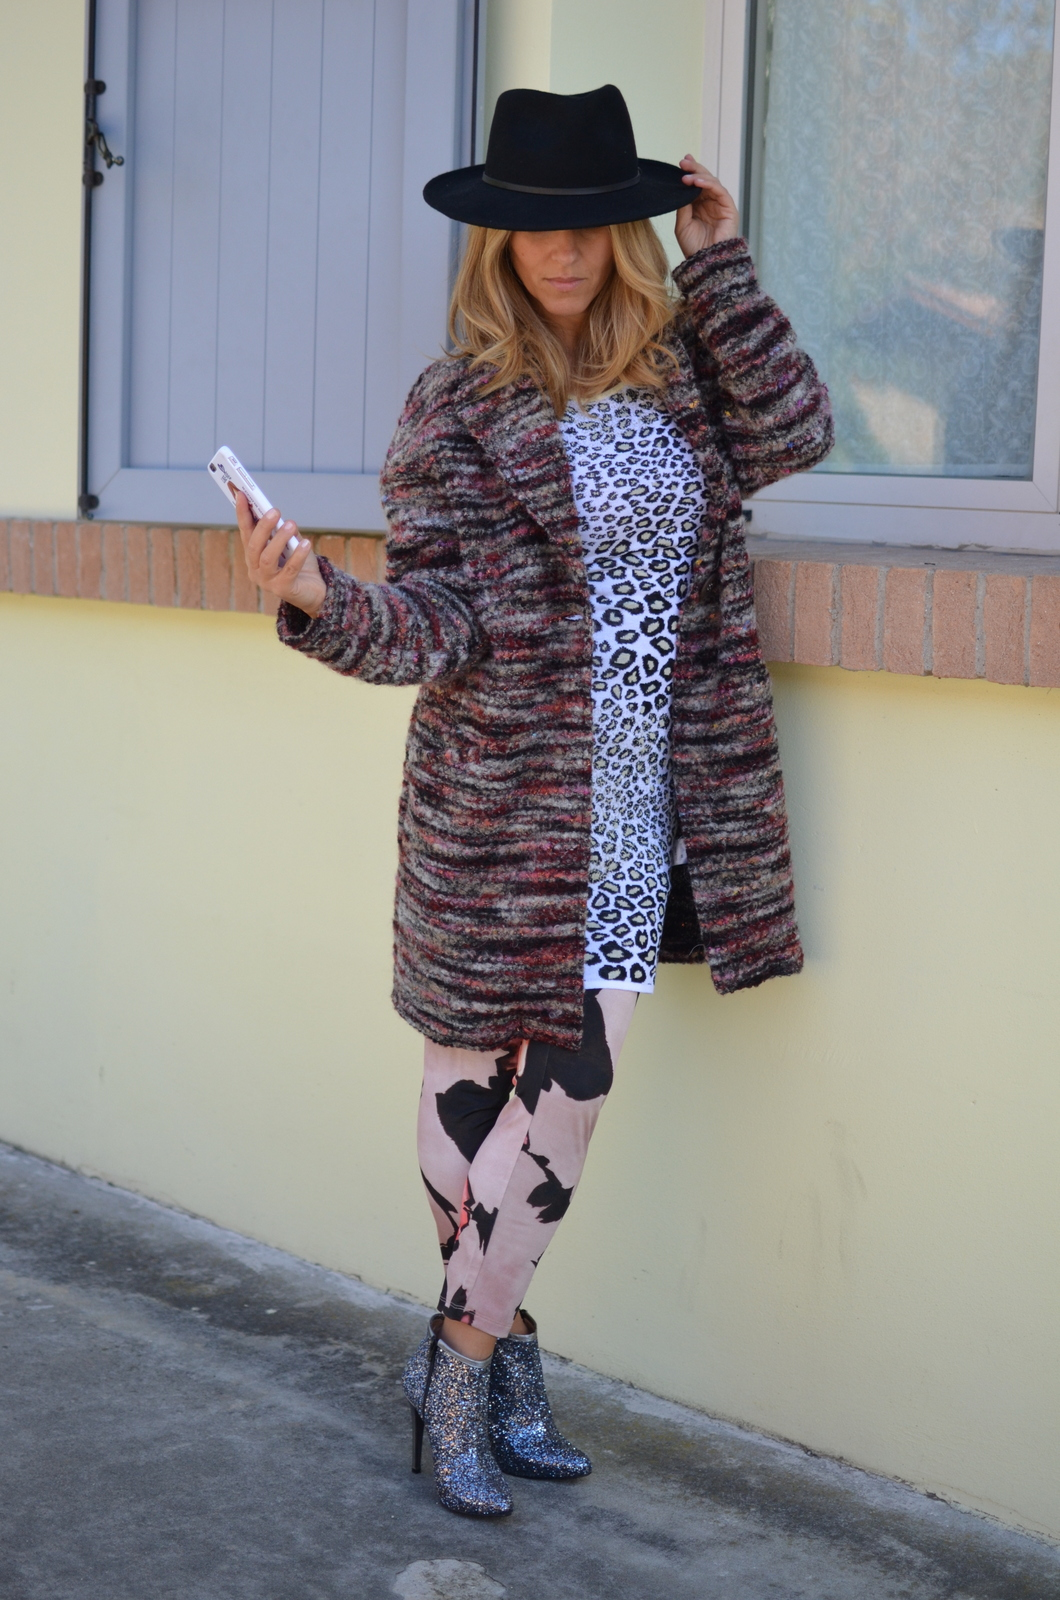 MINI COAT E FLOREAL LEGGINS (6)